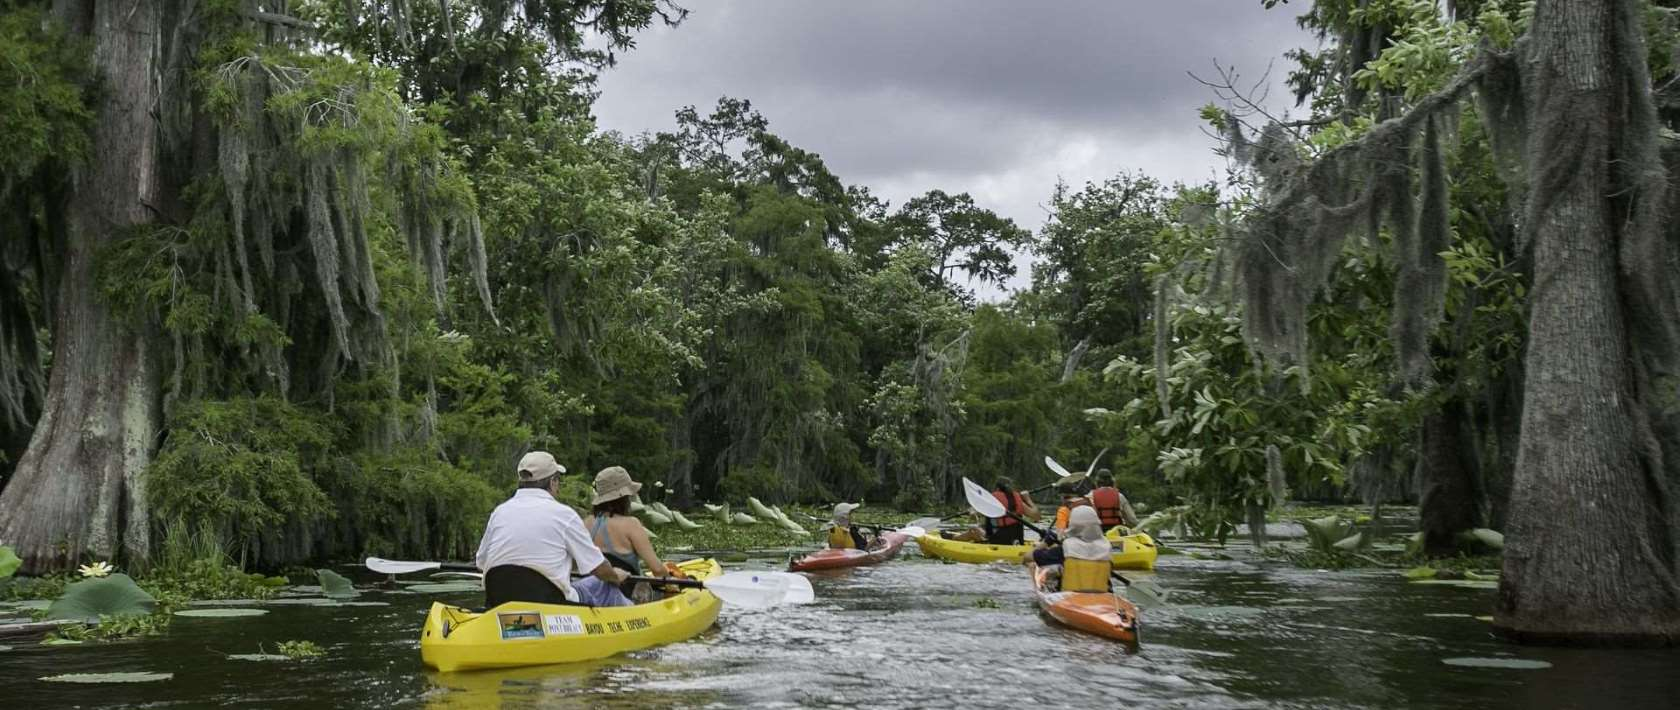 Kayaking through a waterway in the Atchafalaya Basin